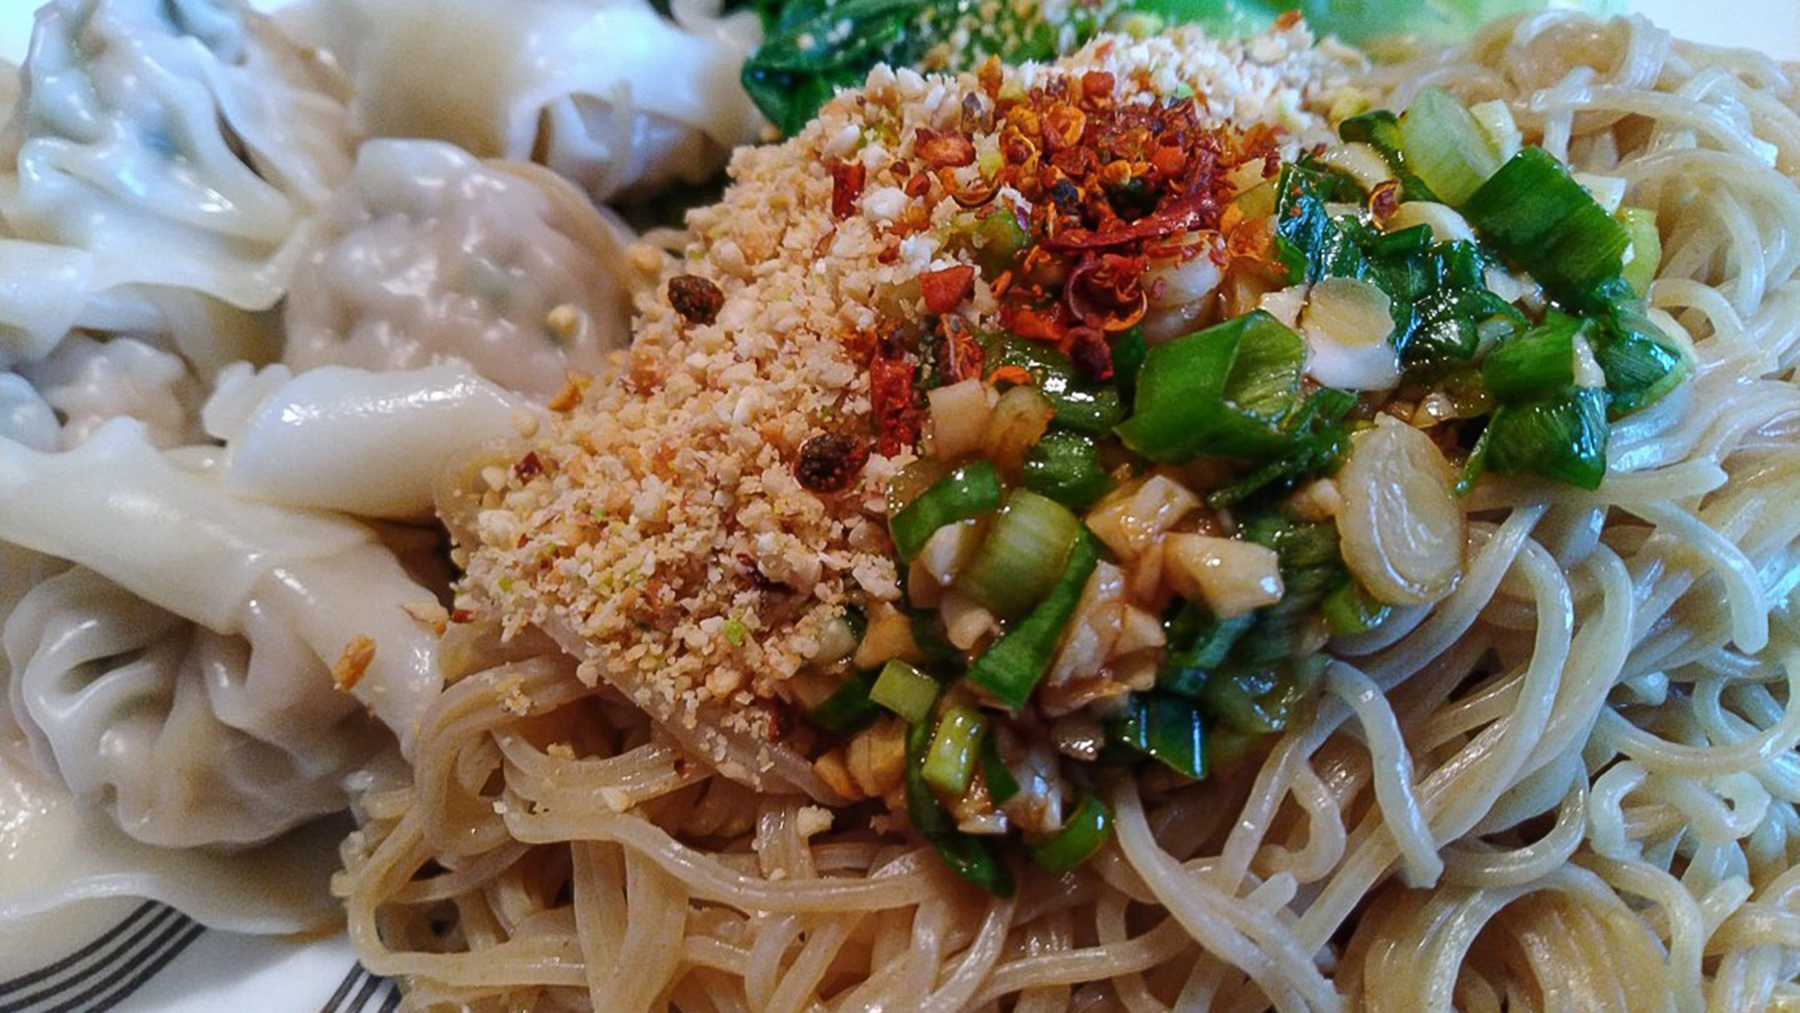 Taiwanese dish of wonton noodles with chili and crushed peanuts.  Photo by Hueih Kan Dung